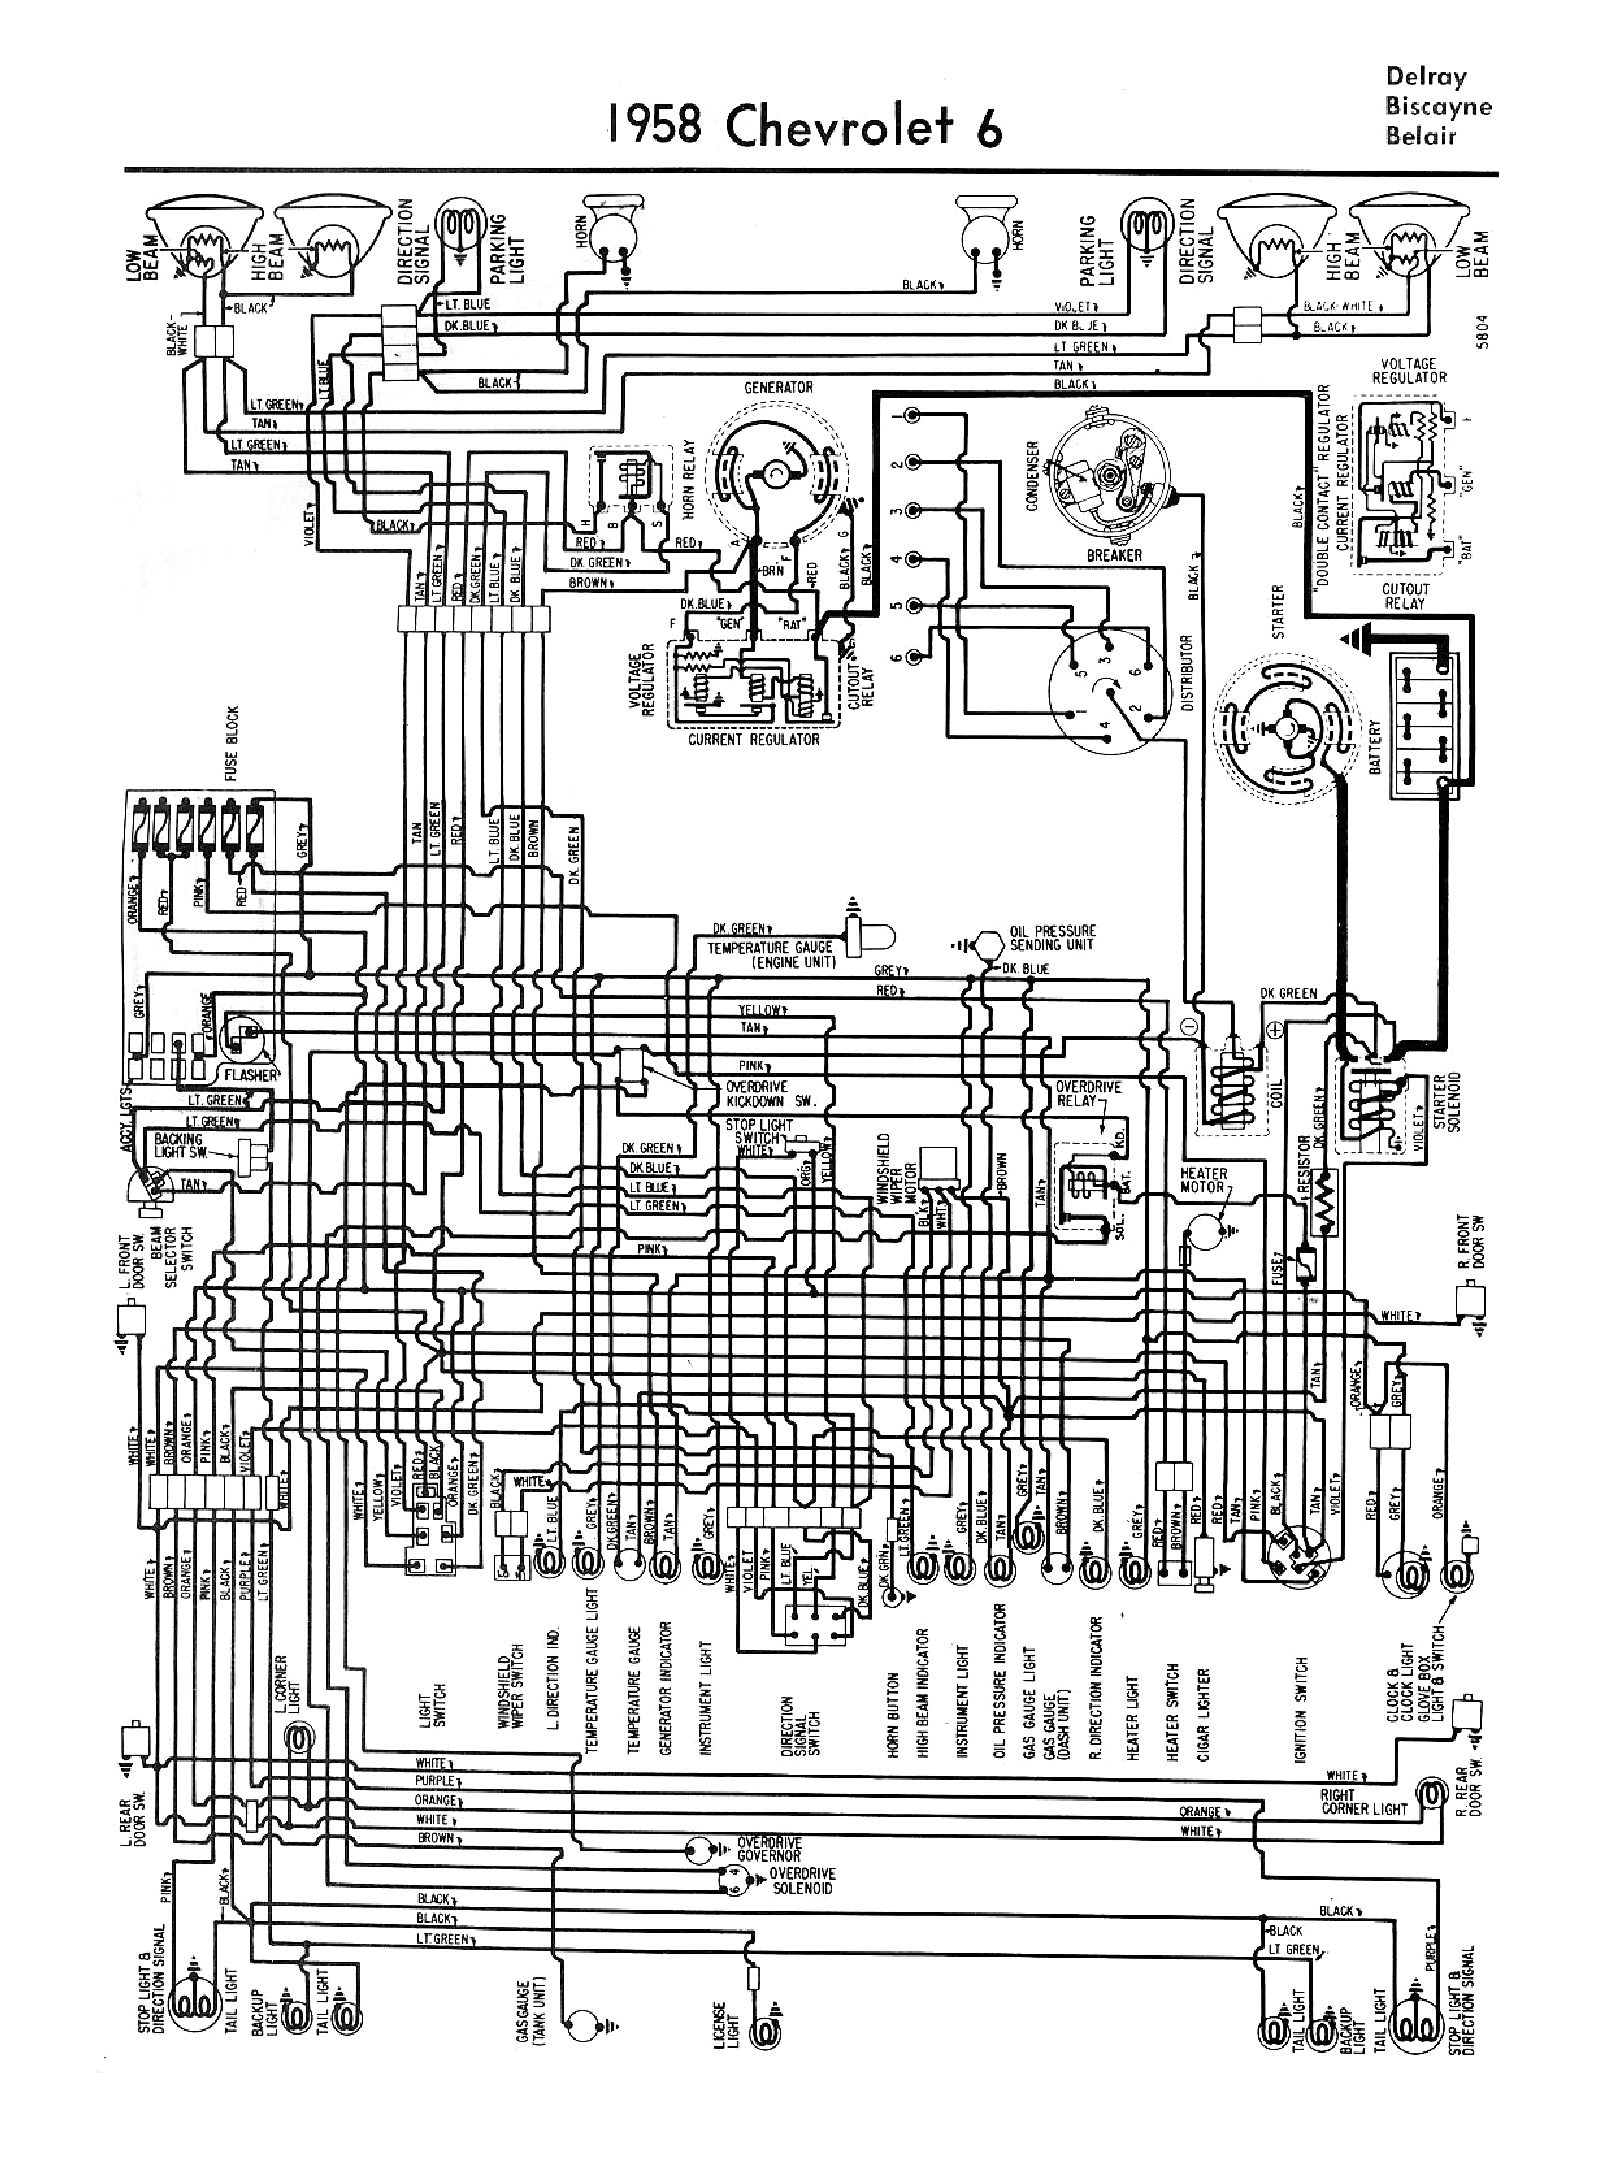 chevy wiring diagrams wiring diagram for 1959 chevy truck #4